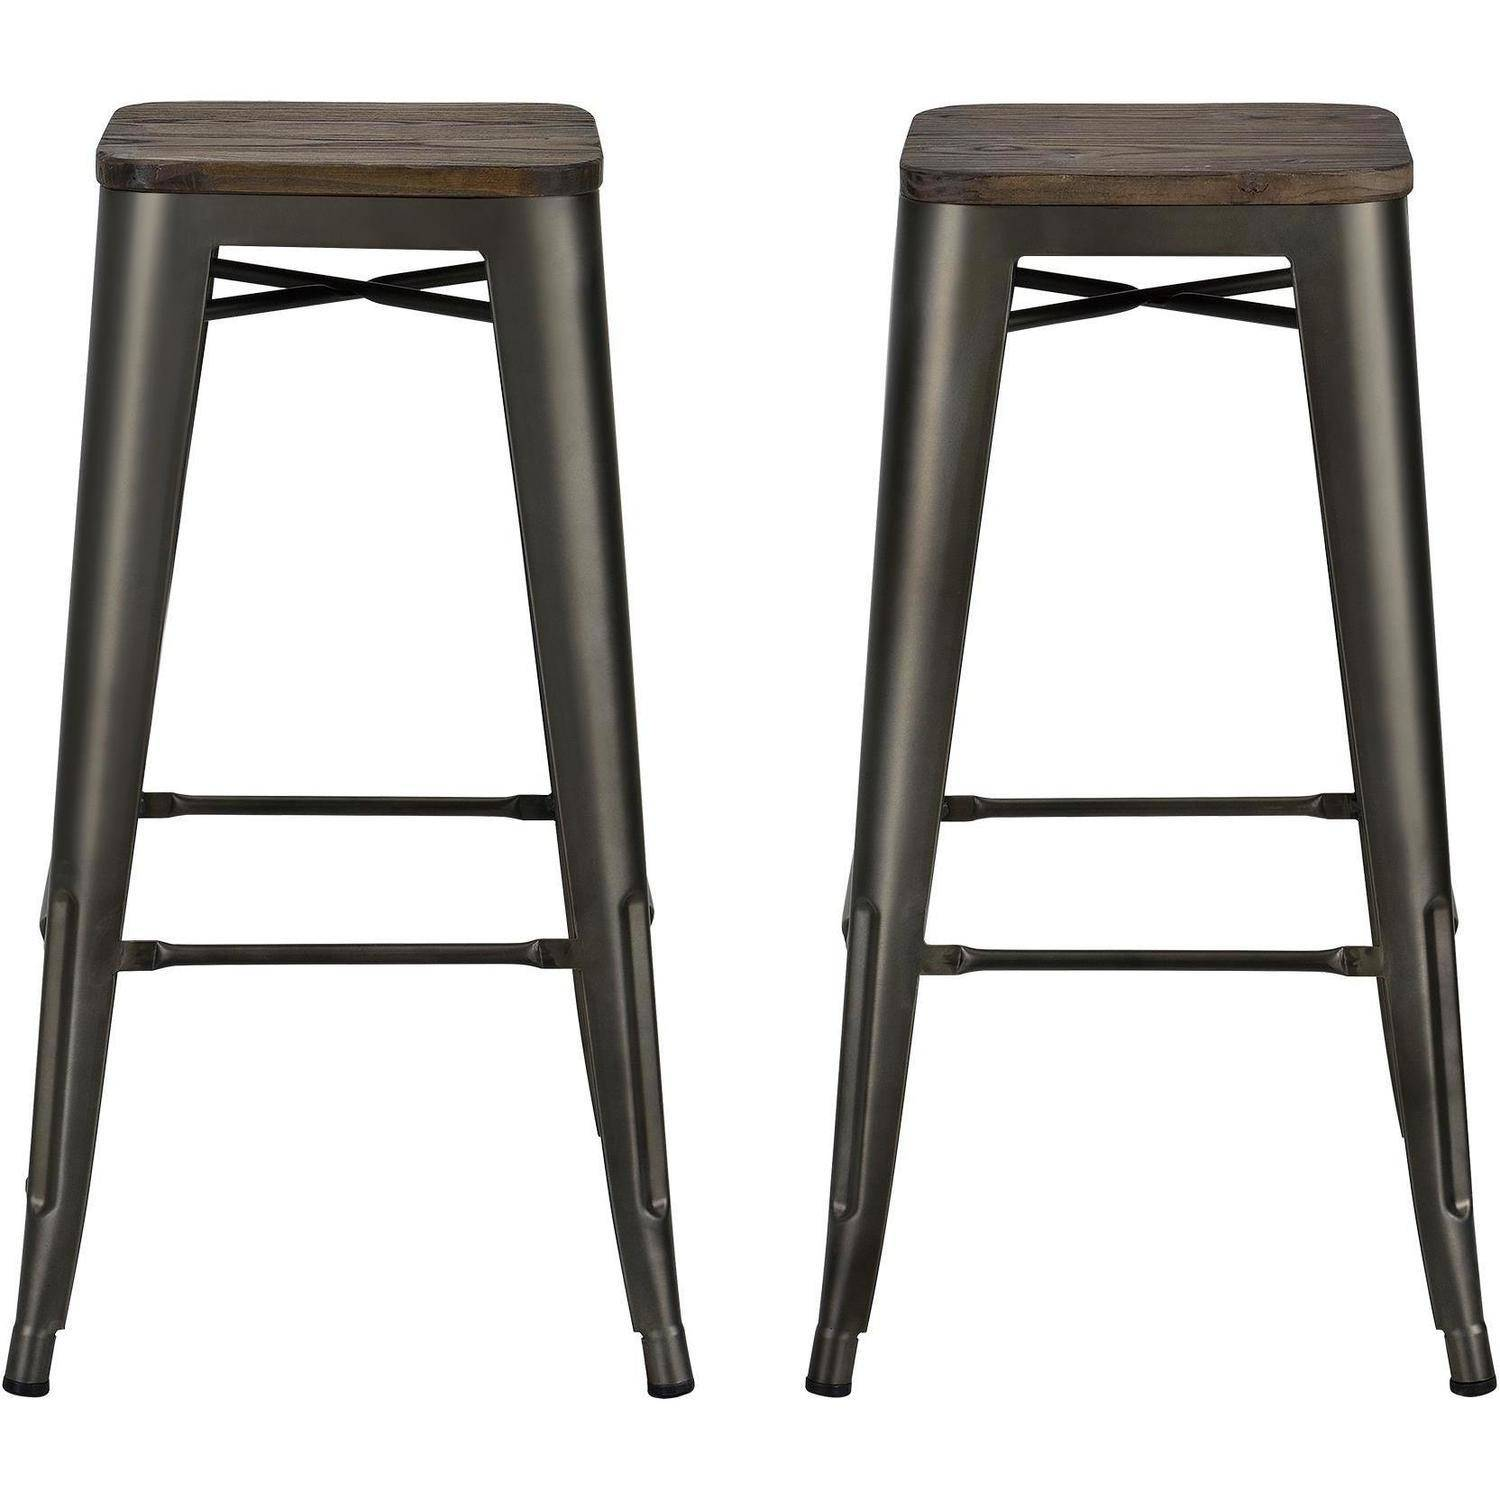 Dhp Fusion 30 Metal Backless Bar Stool With Wood Seat Set Of 2 Multiple Colors